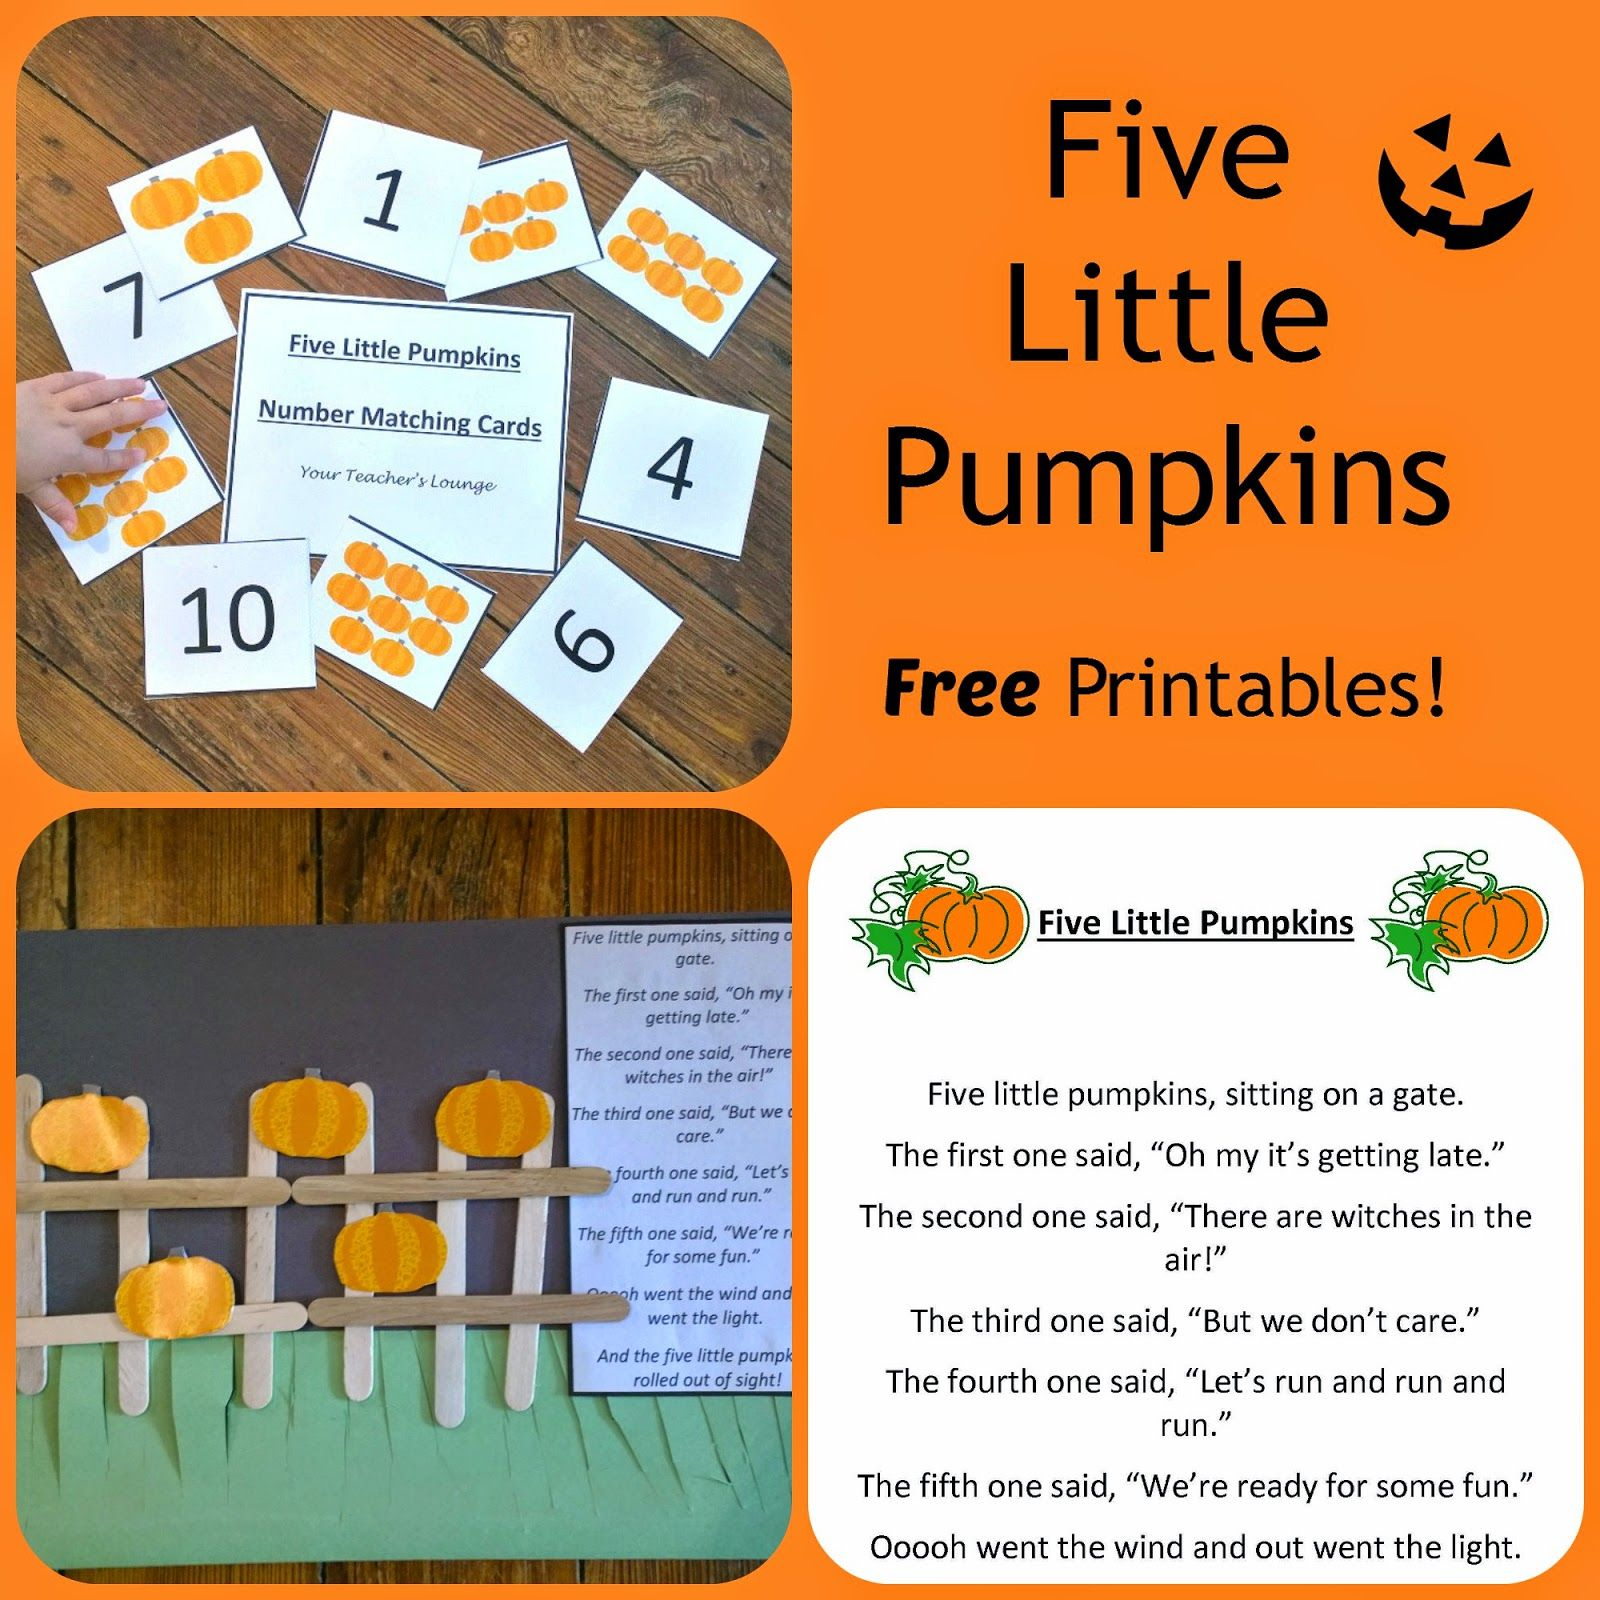 5 Little Pumpkins Poem Craft And Number Matching Cards